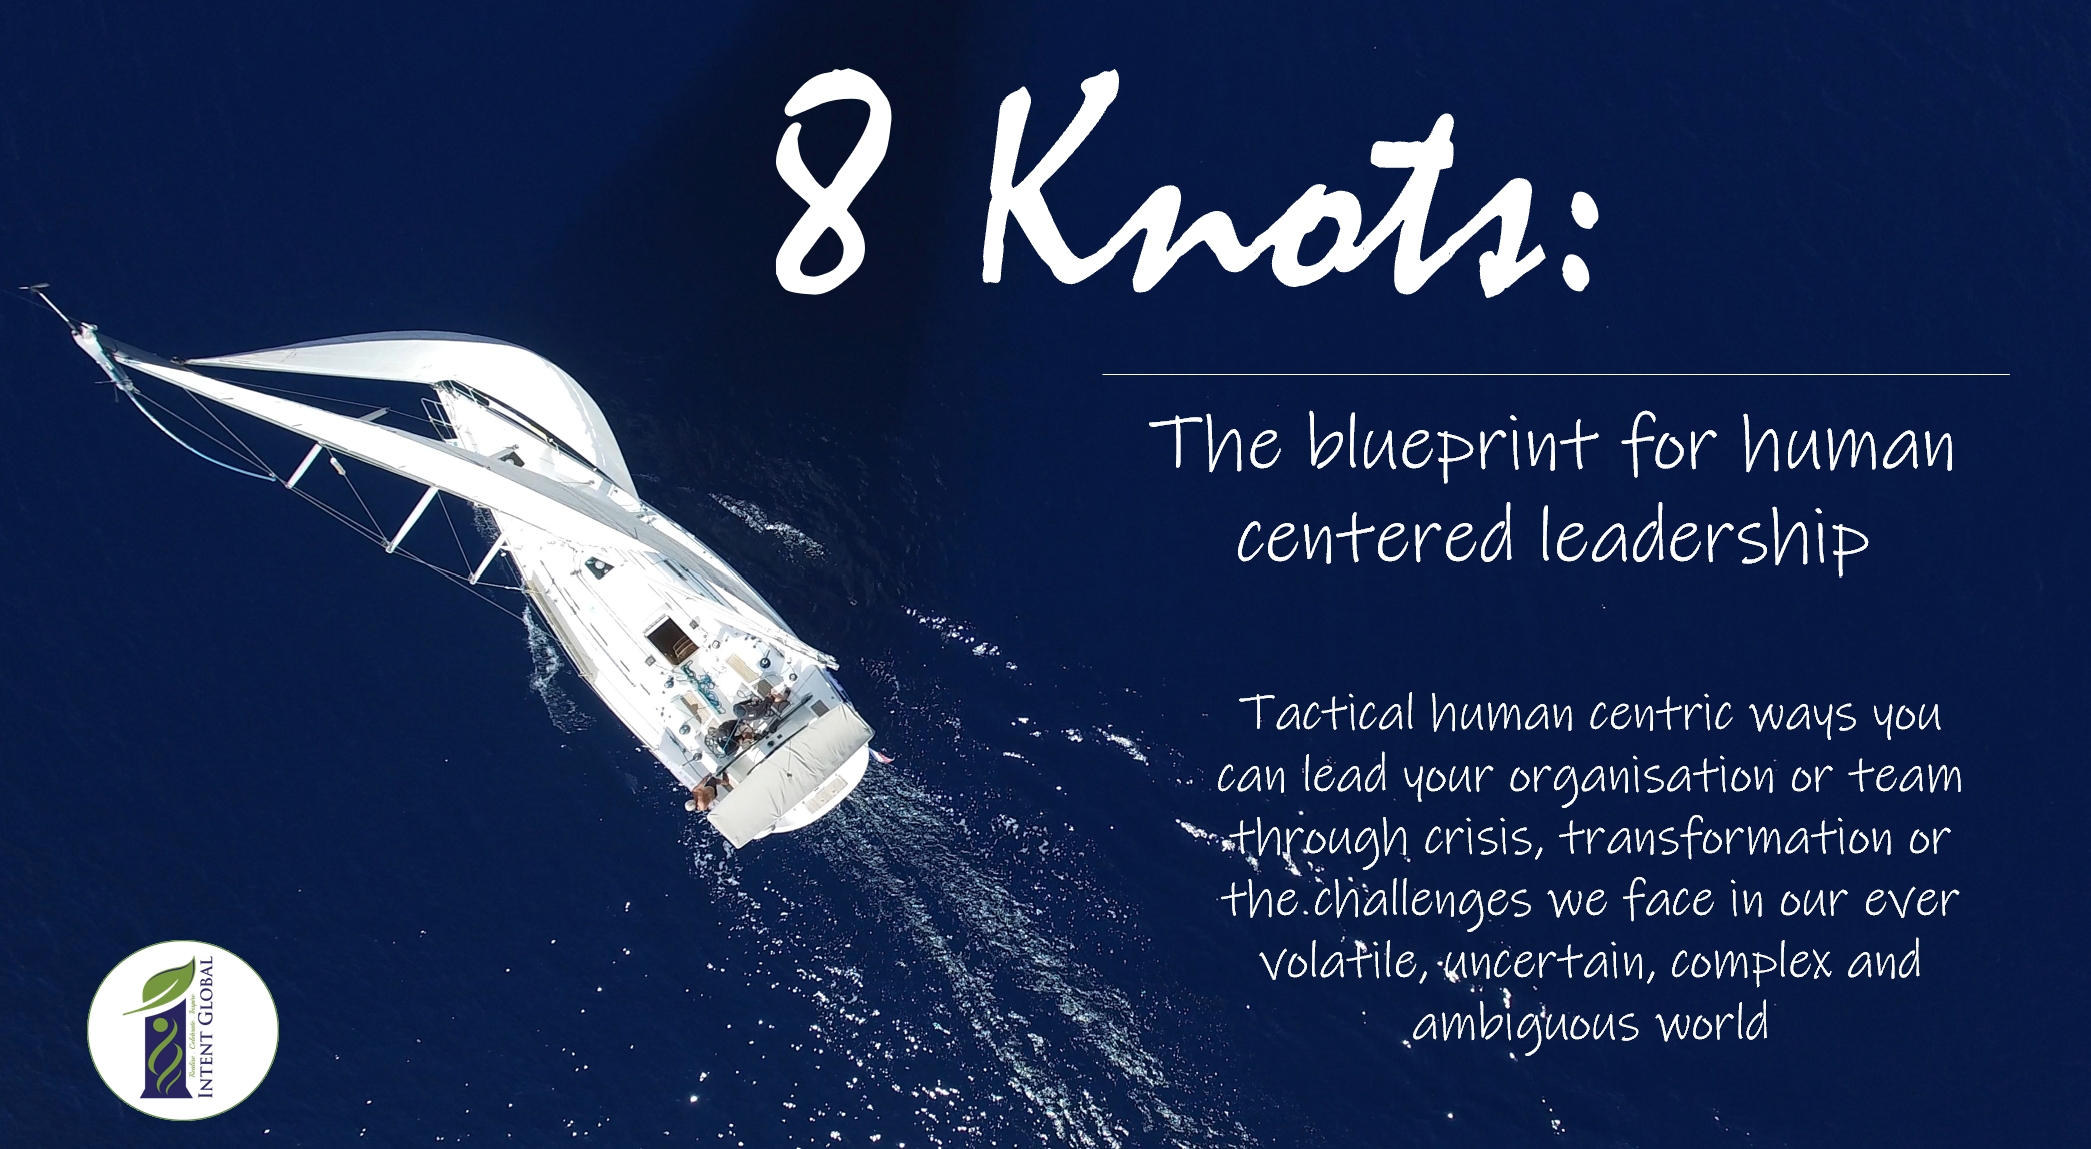 Tier 2: 8 Knots – Blueprint for Human Centered Leadership (Team Lab)